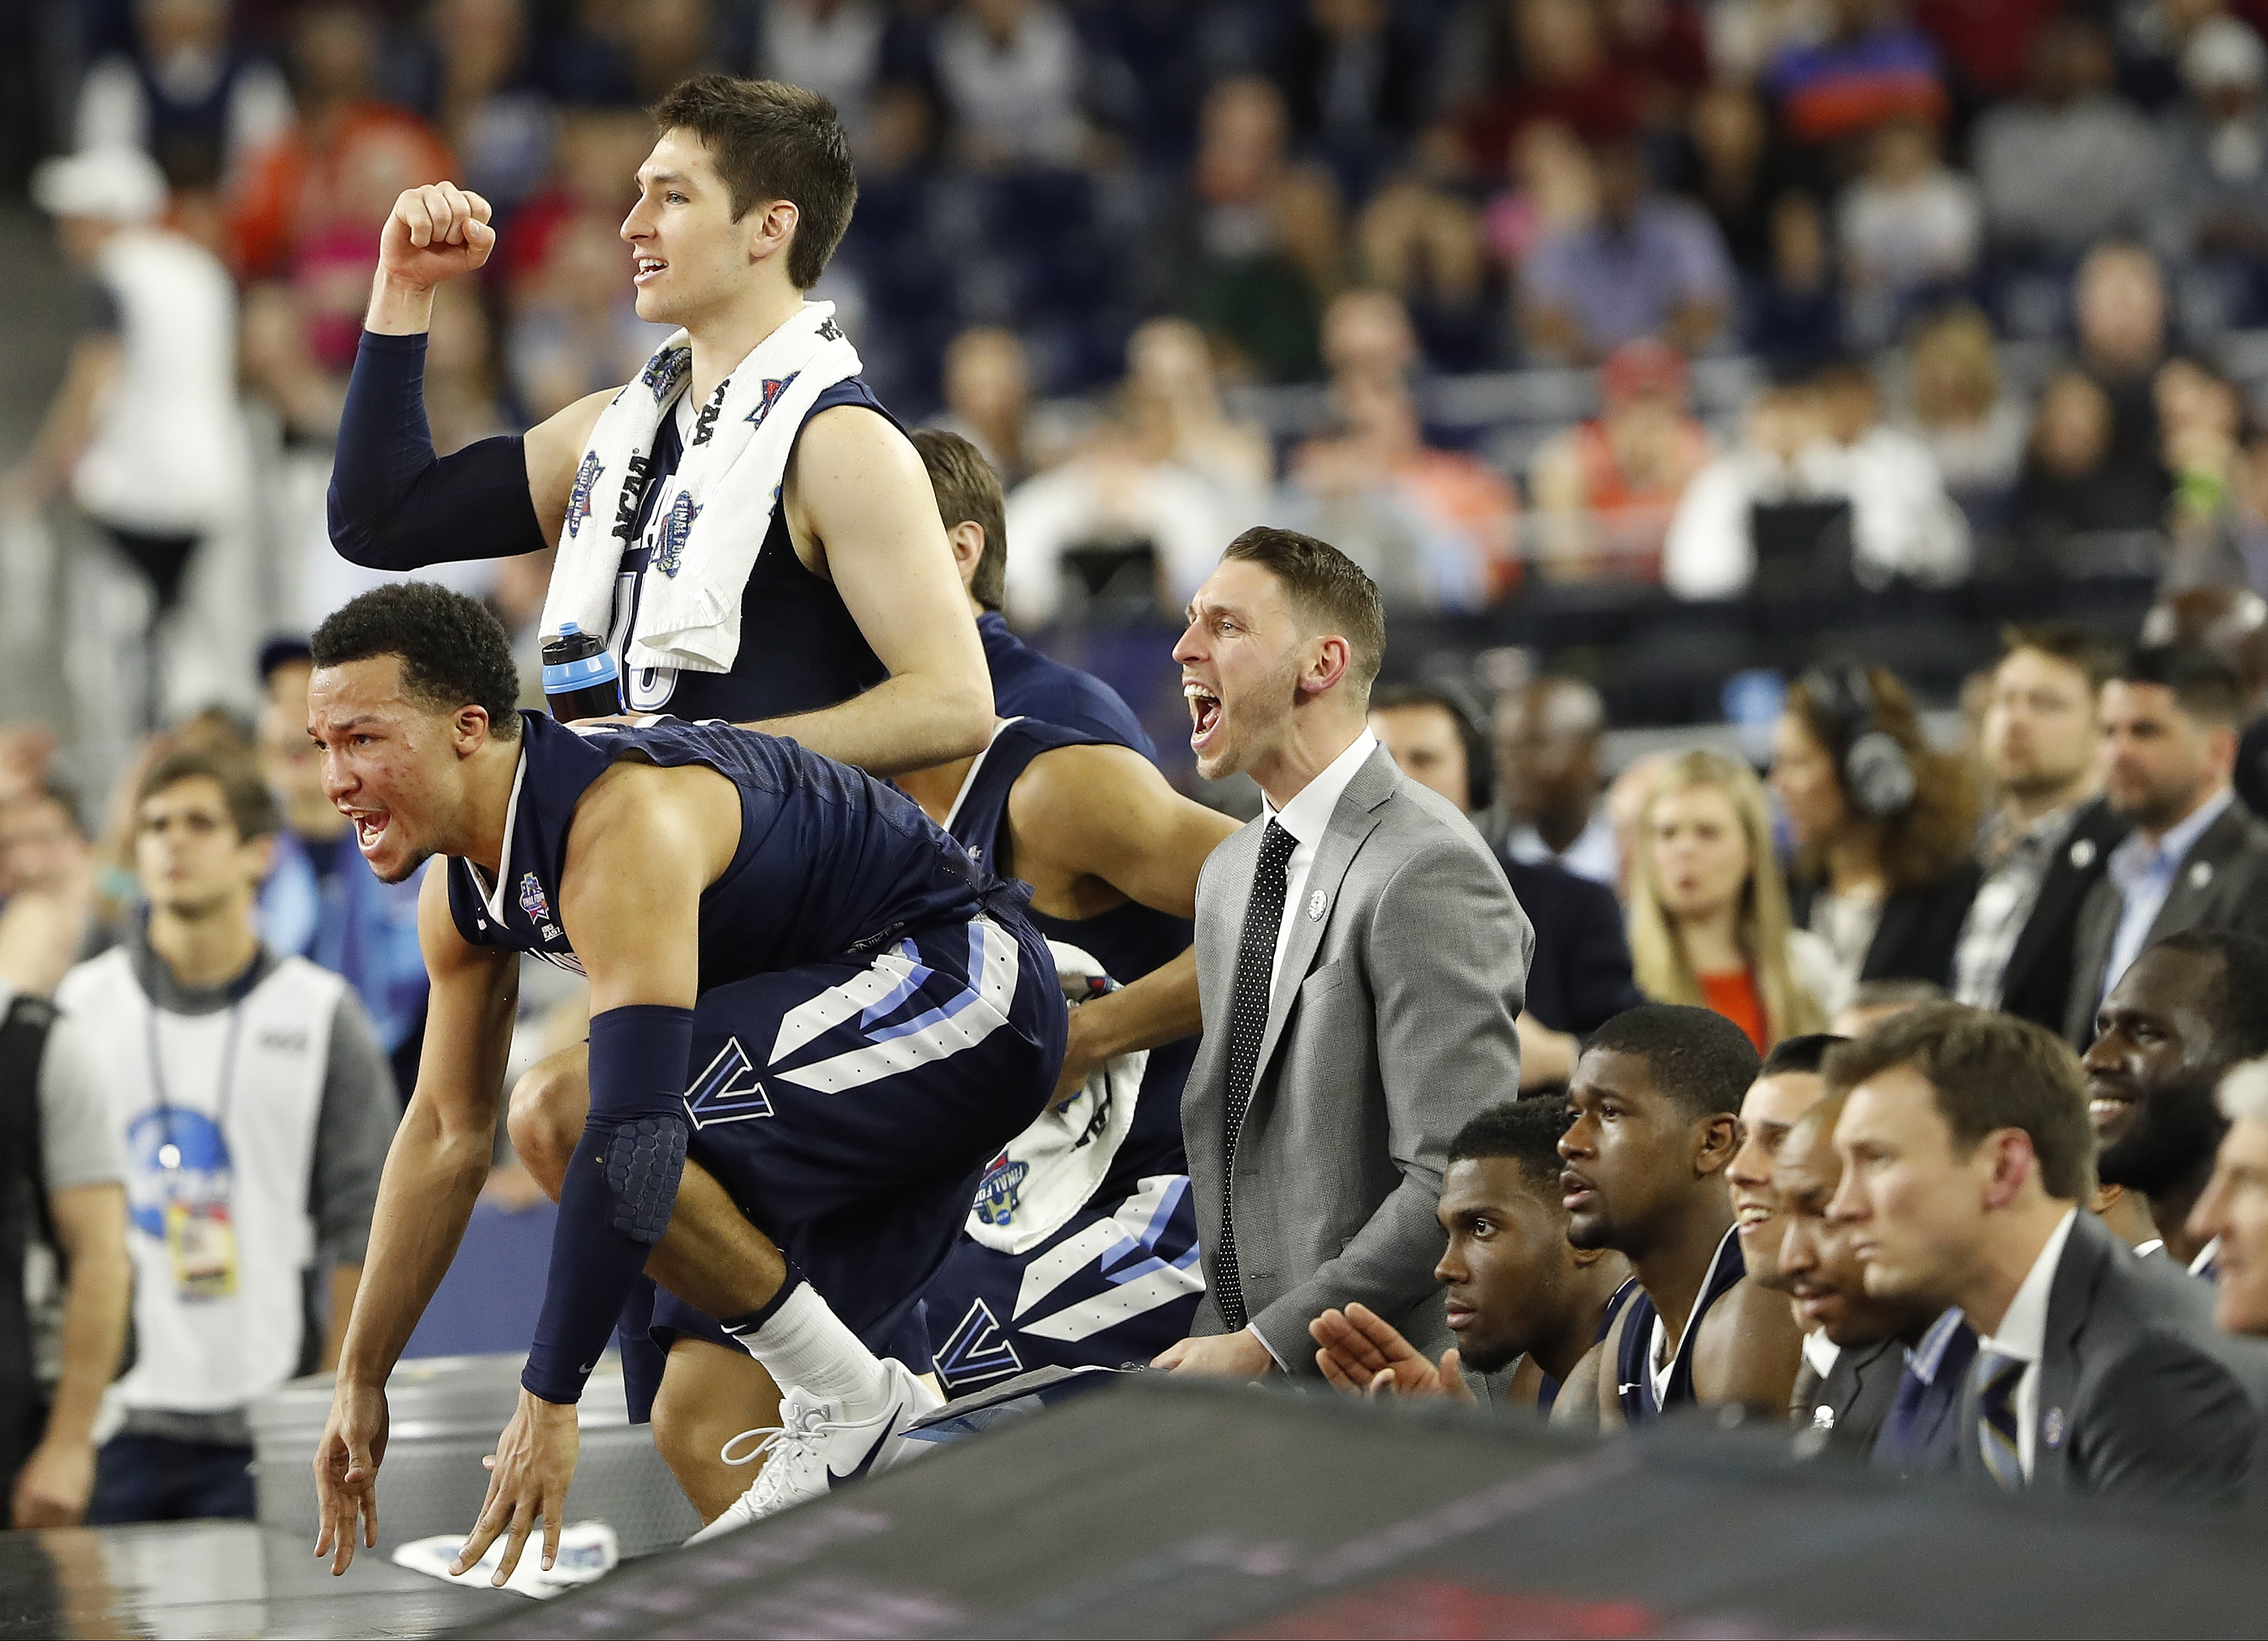 The Villanova bench reacts to play against Oklahoma during the second half of the NCAA Final Four tournament college basketball semifinal game Saturday, April 2, 2016, in Houston. (AP Photo/Eric Gay)